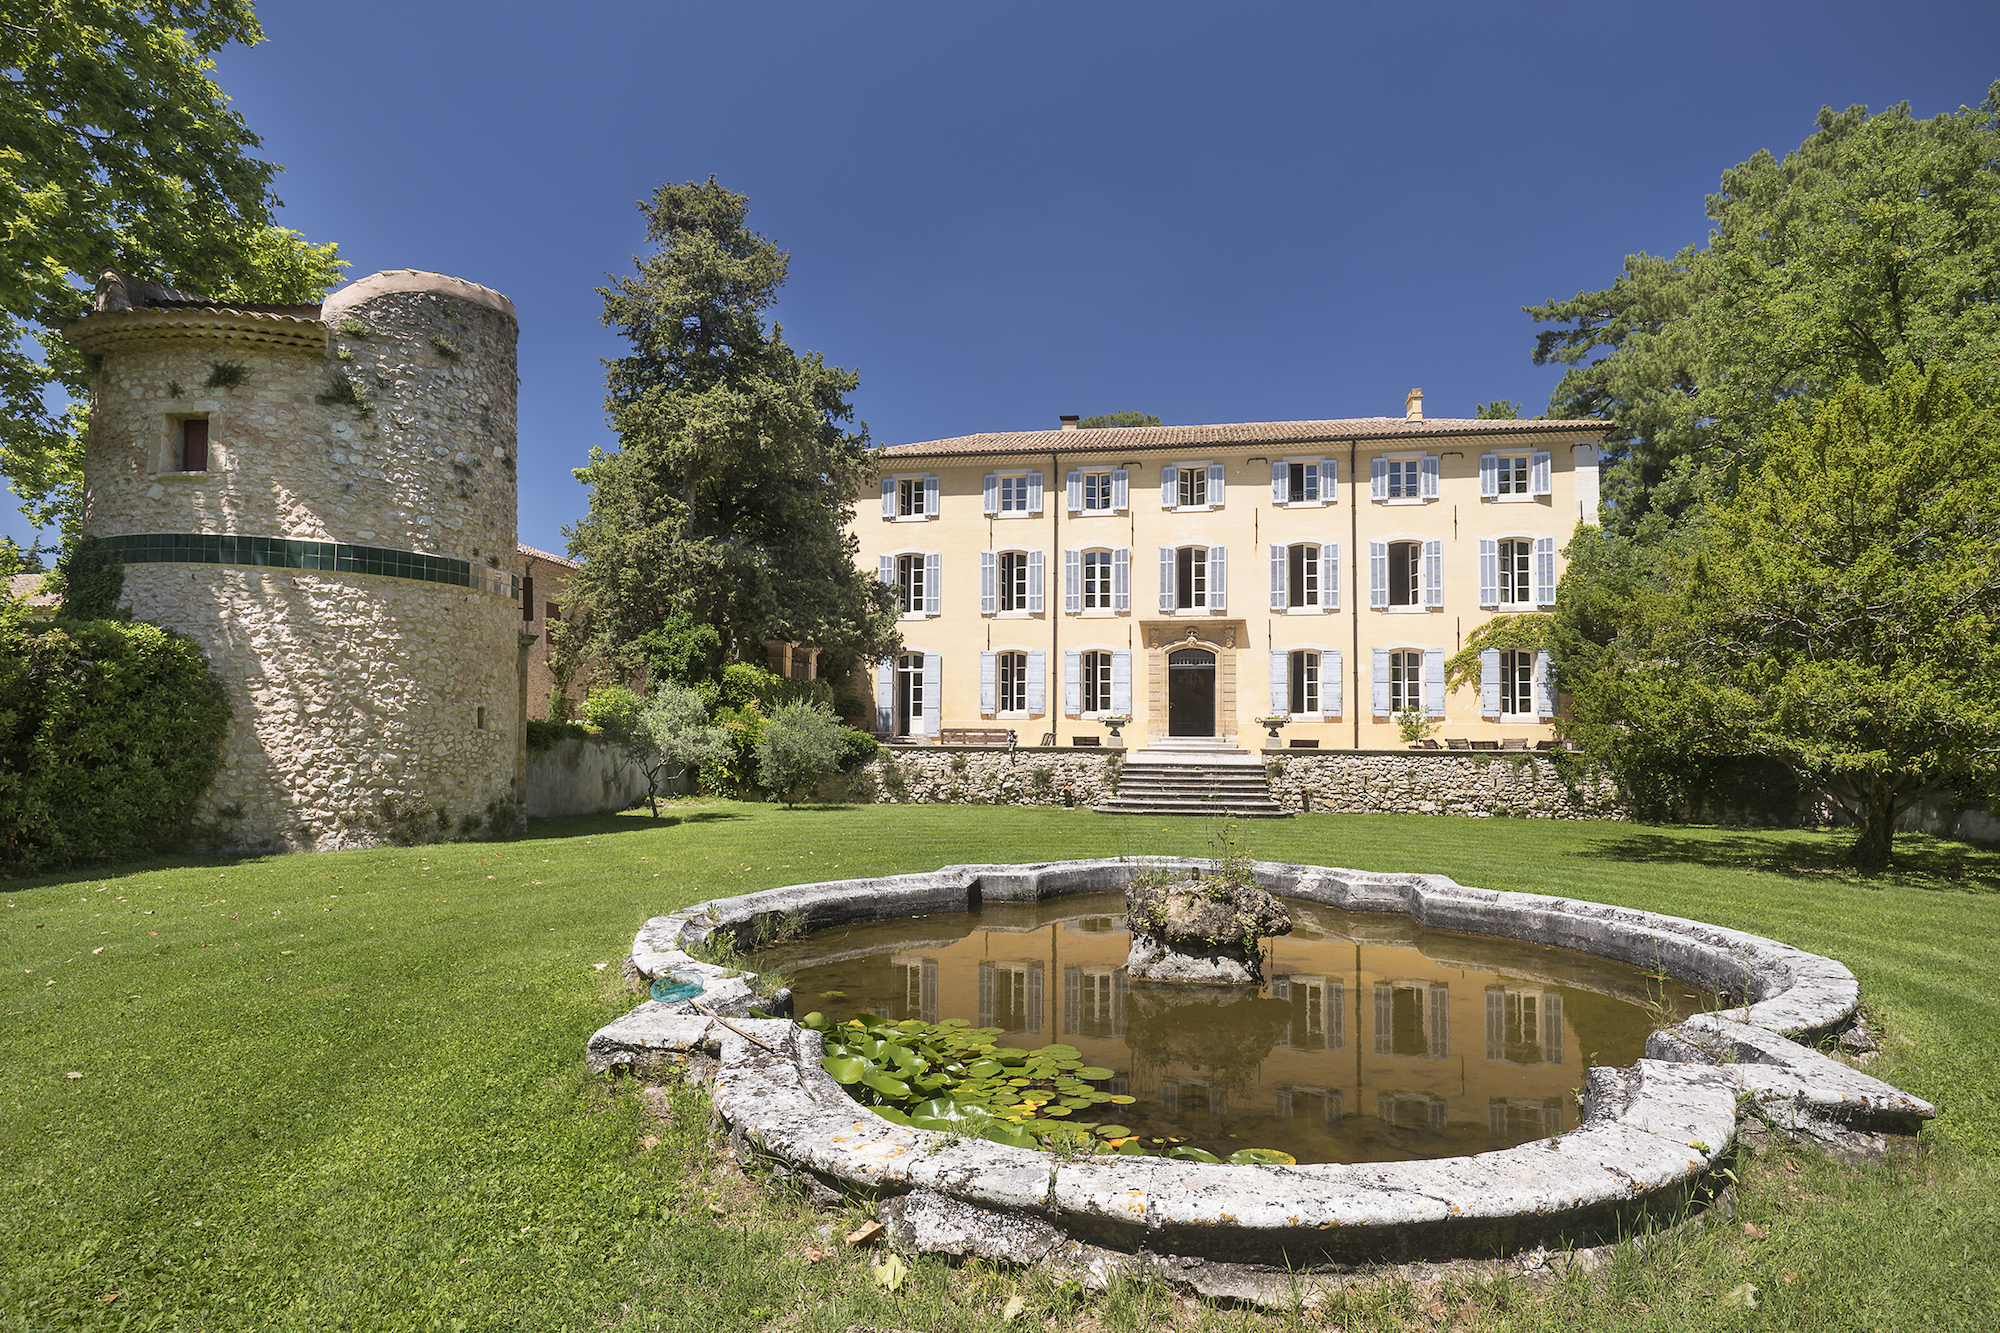 Stone Aix En Provence aix-en-provence 18th century country house | stone investment